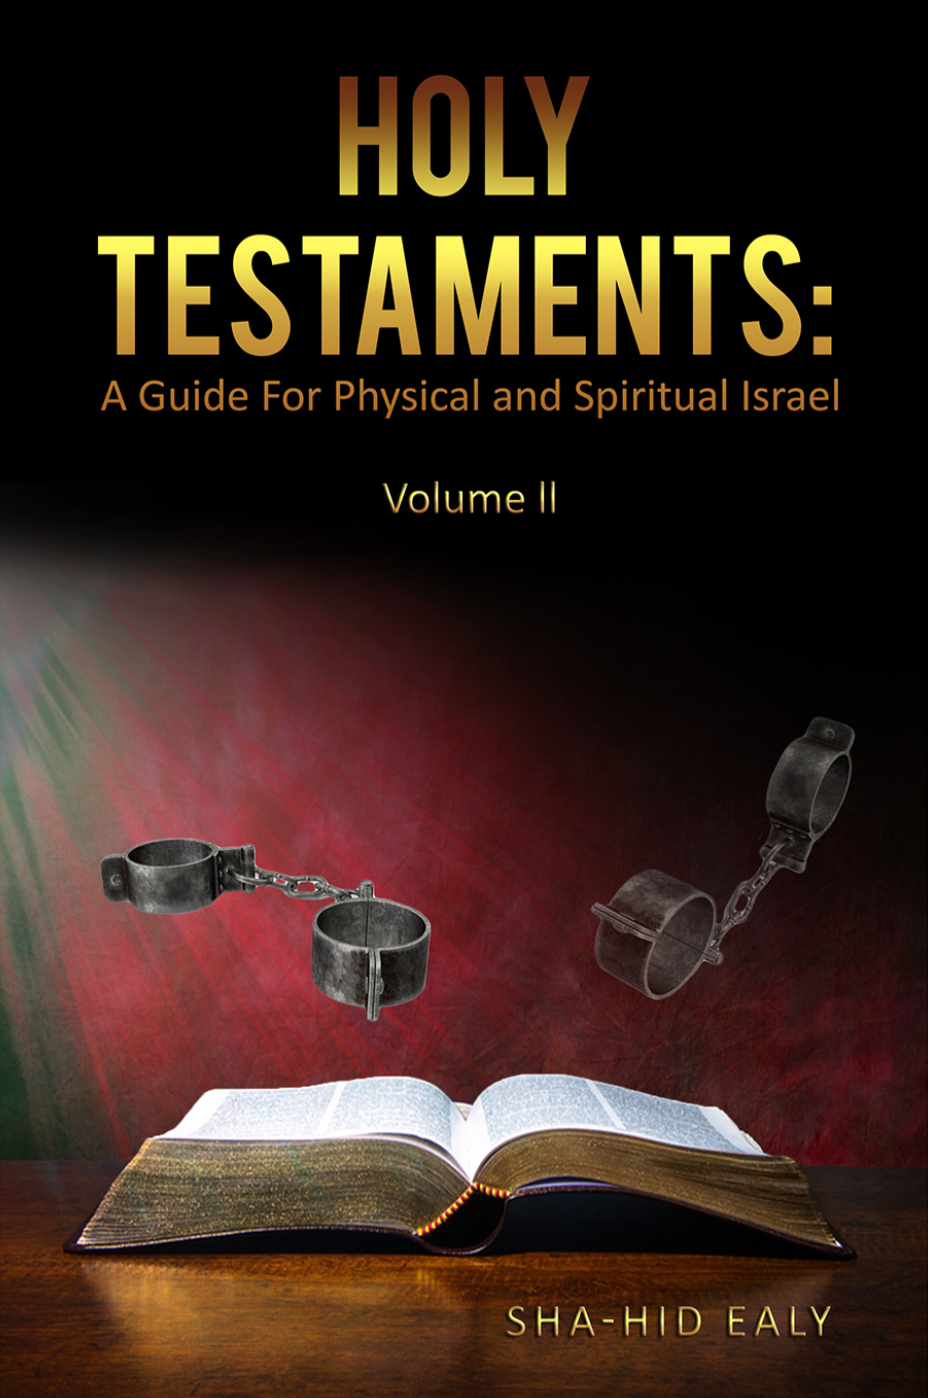 HOLY TESTAMENTS: A GUIDE FOR PHYSICAL AND SPIRITUAL ISRAEL VOL. II